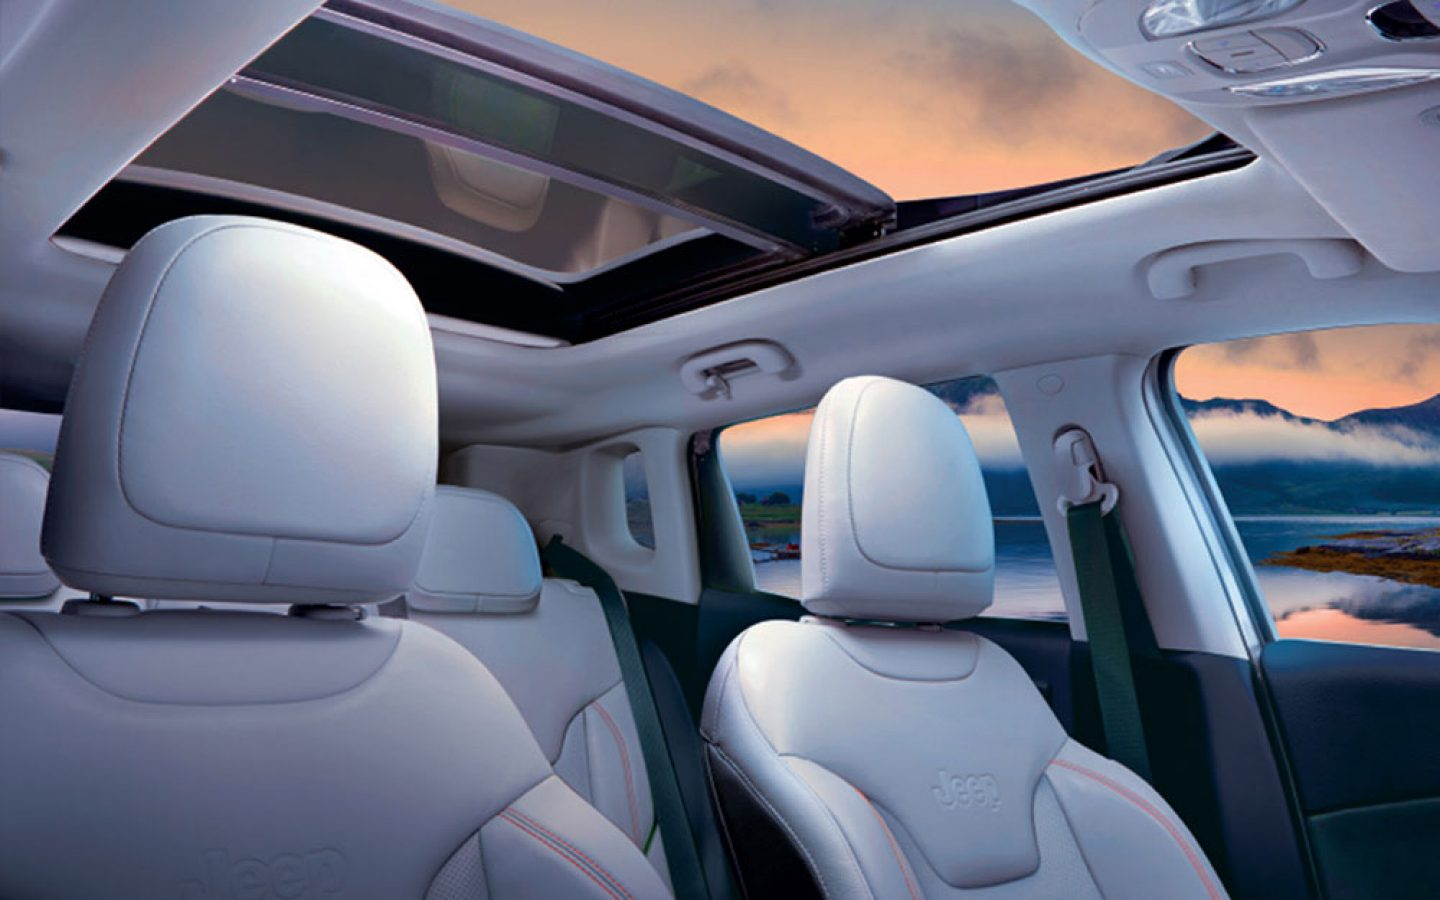 Jeep Compass Images, Video, Interior & Exterior Photo Gallery - Jeep ...